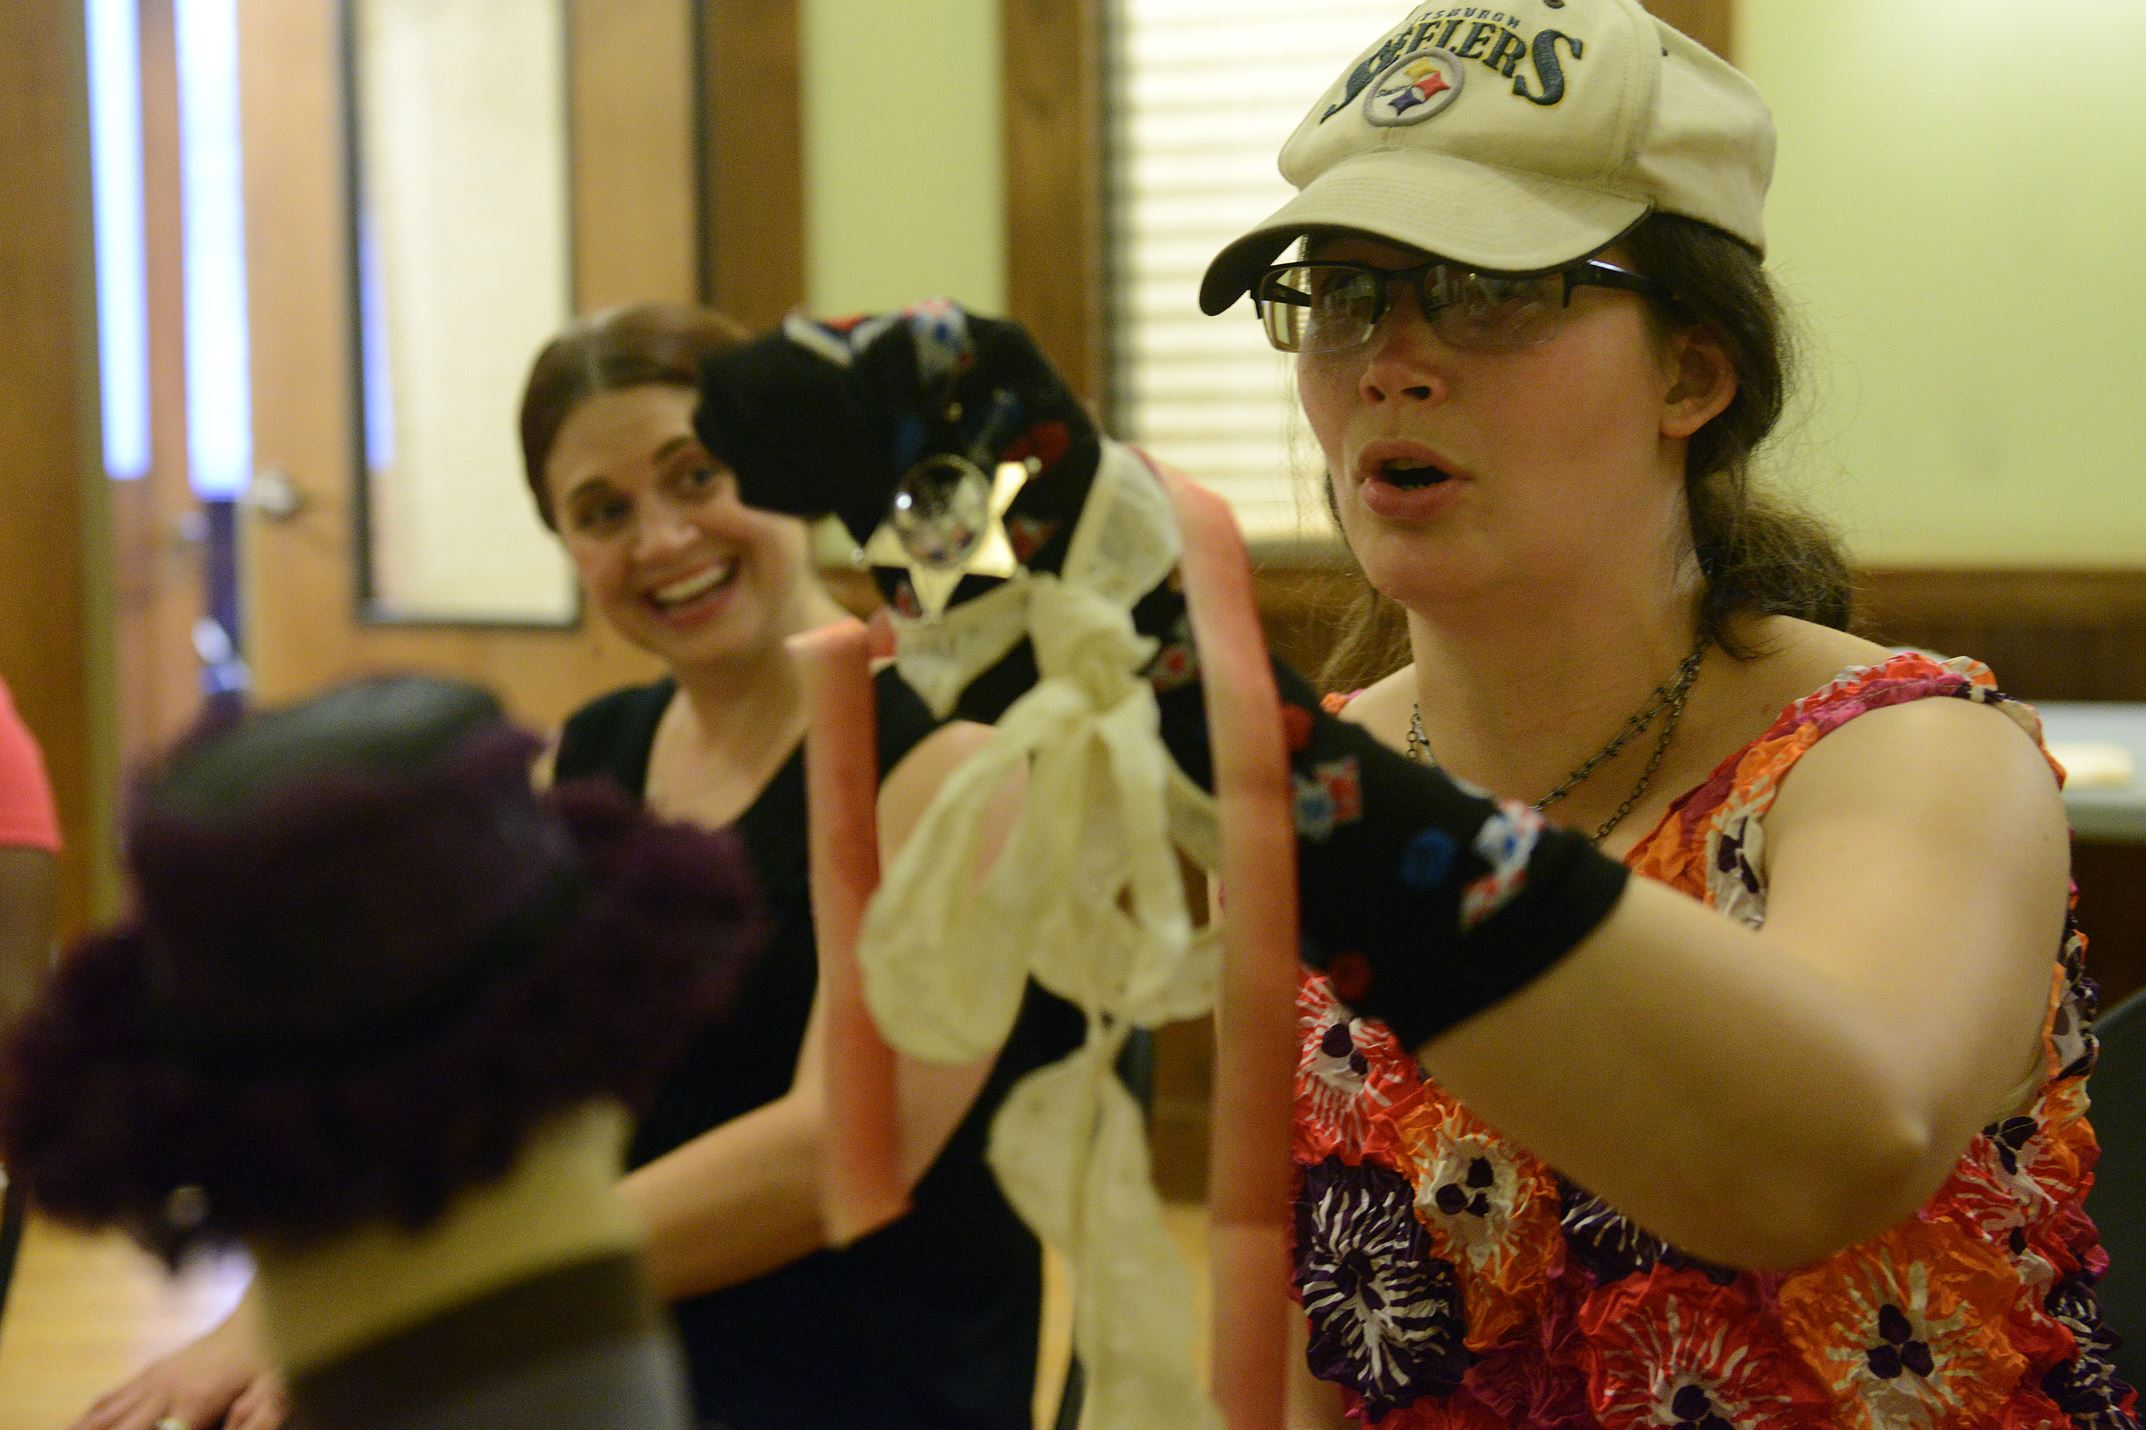 Robyn McKee, 27, of Plum rehearses with her puppet for an upcoming performance at the Union Project.